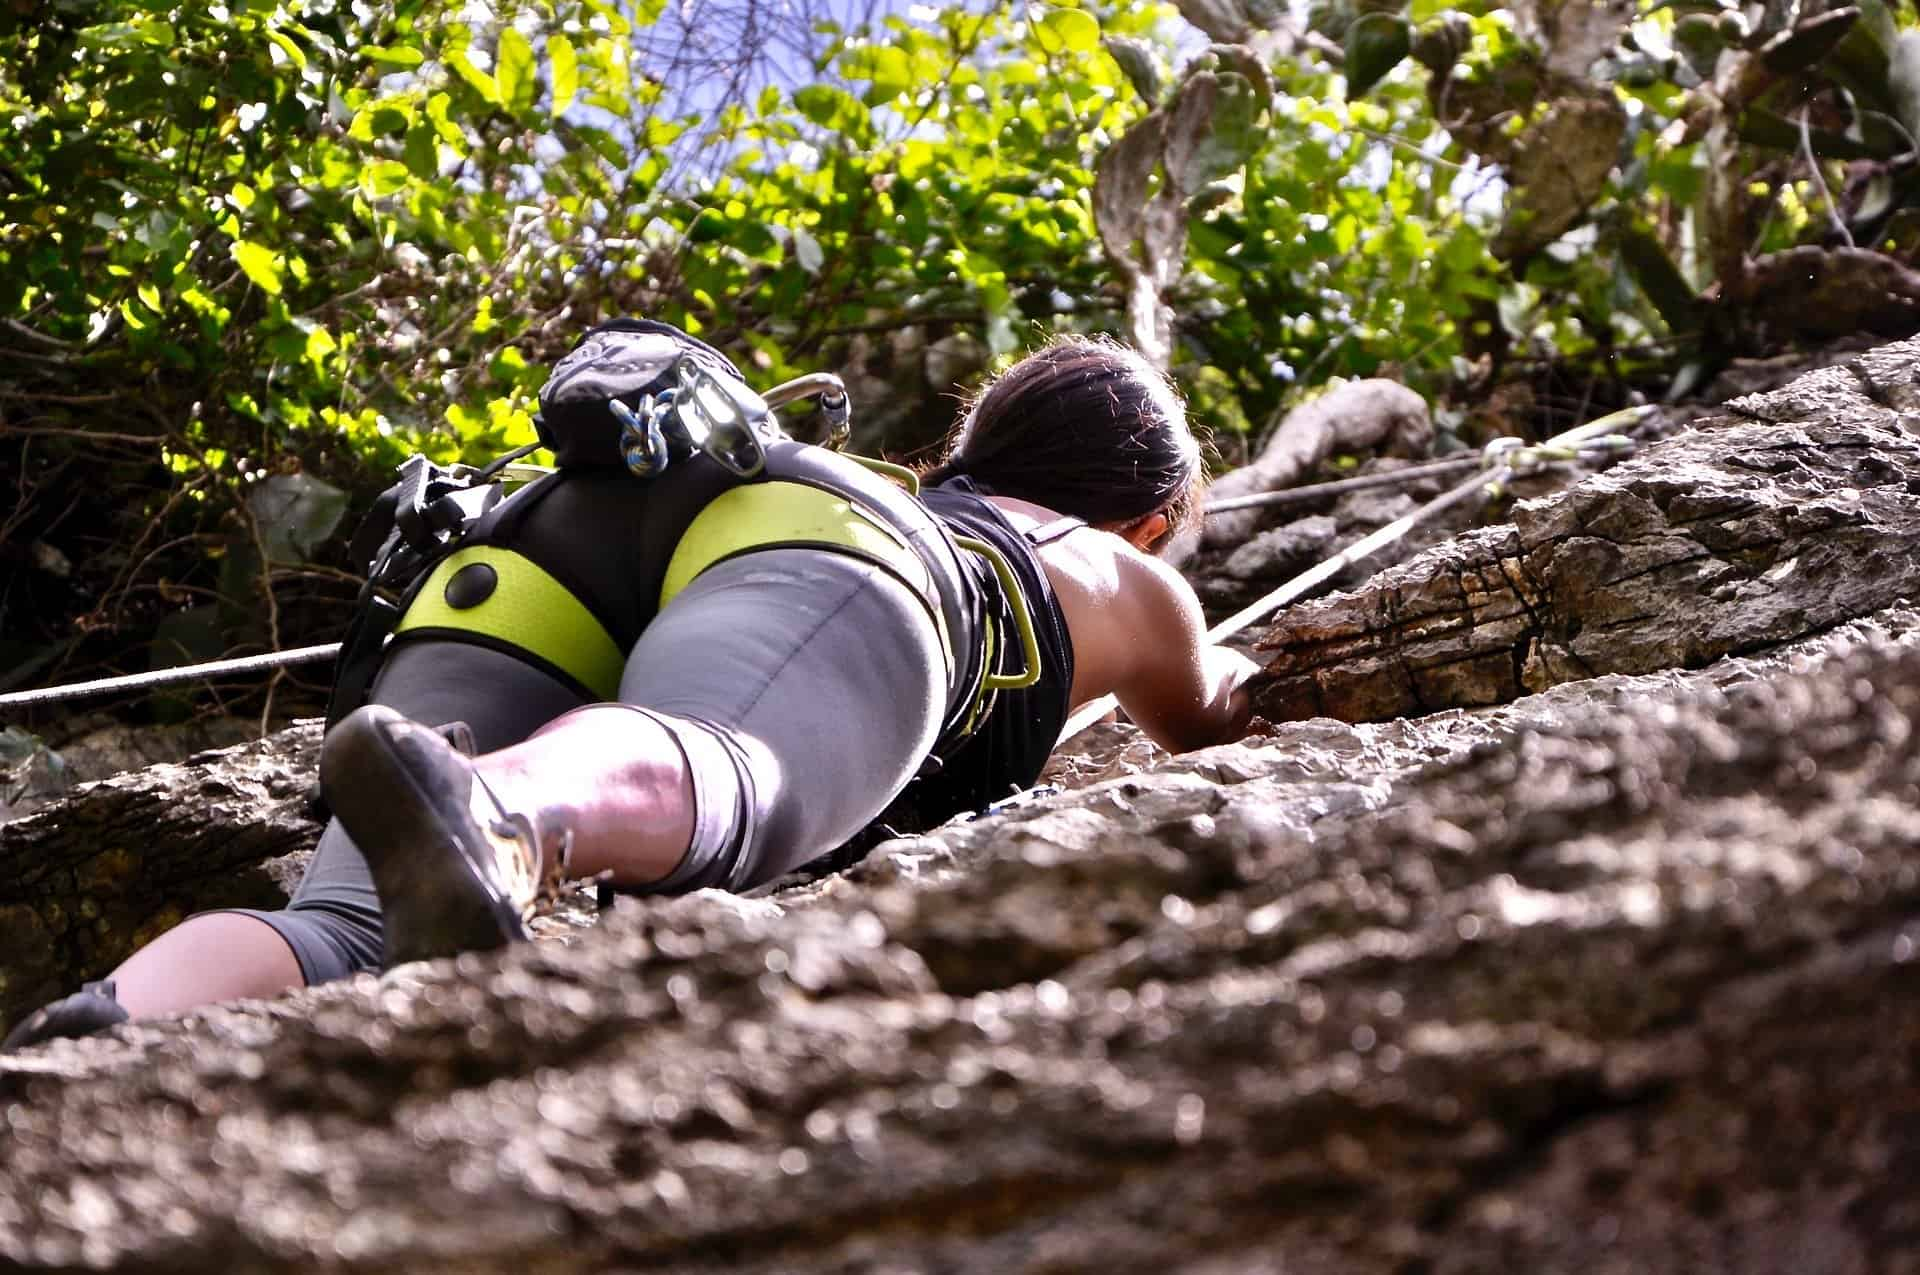 The Mental Game Of Climbing - Handle Your Fears And Stay In The Moment